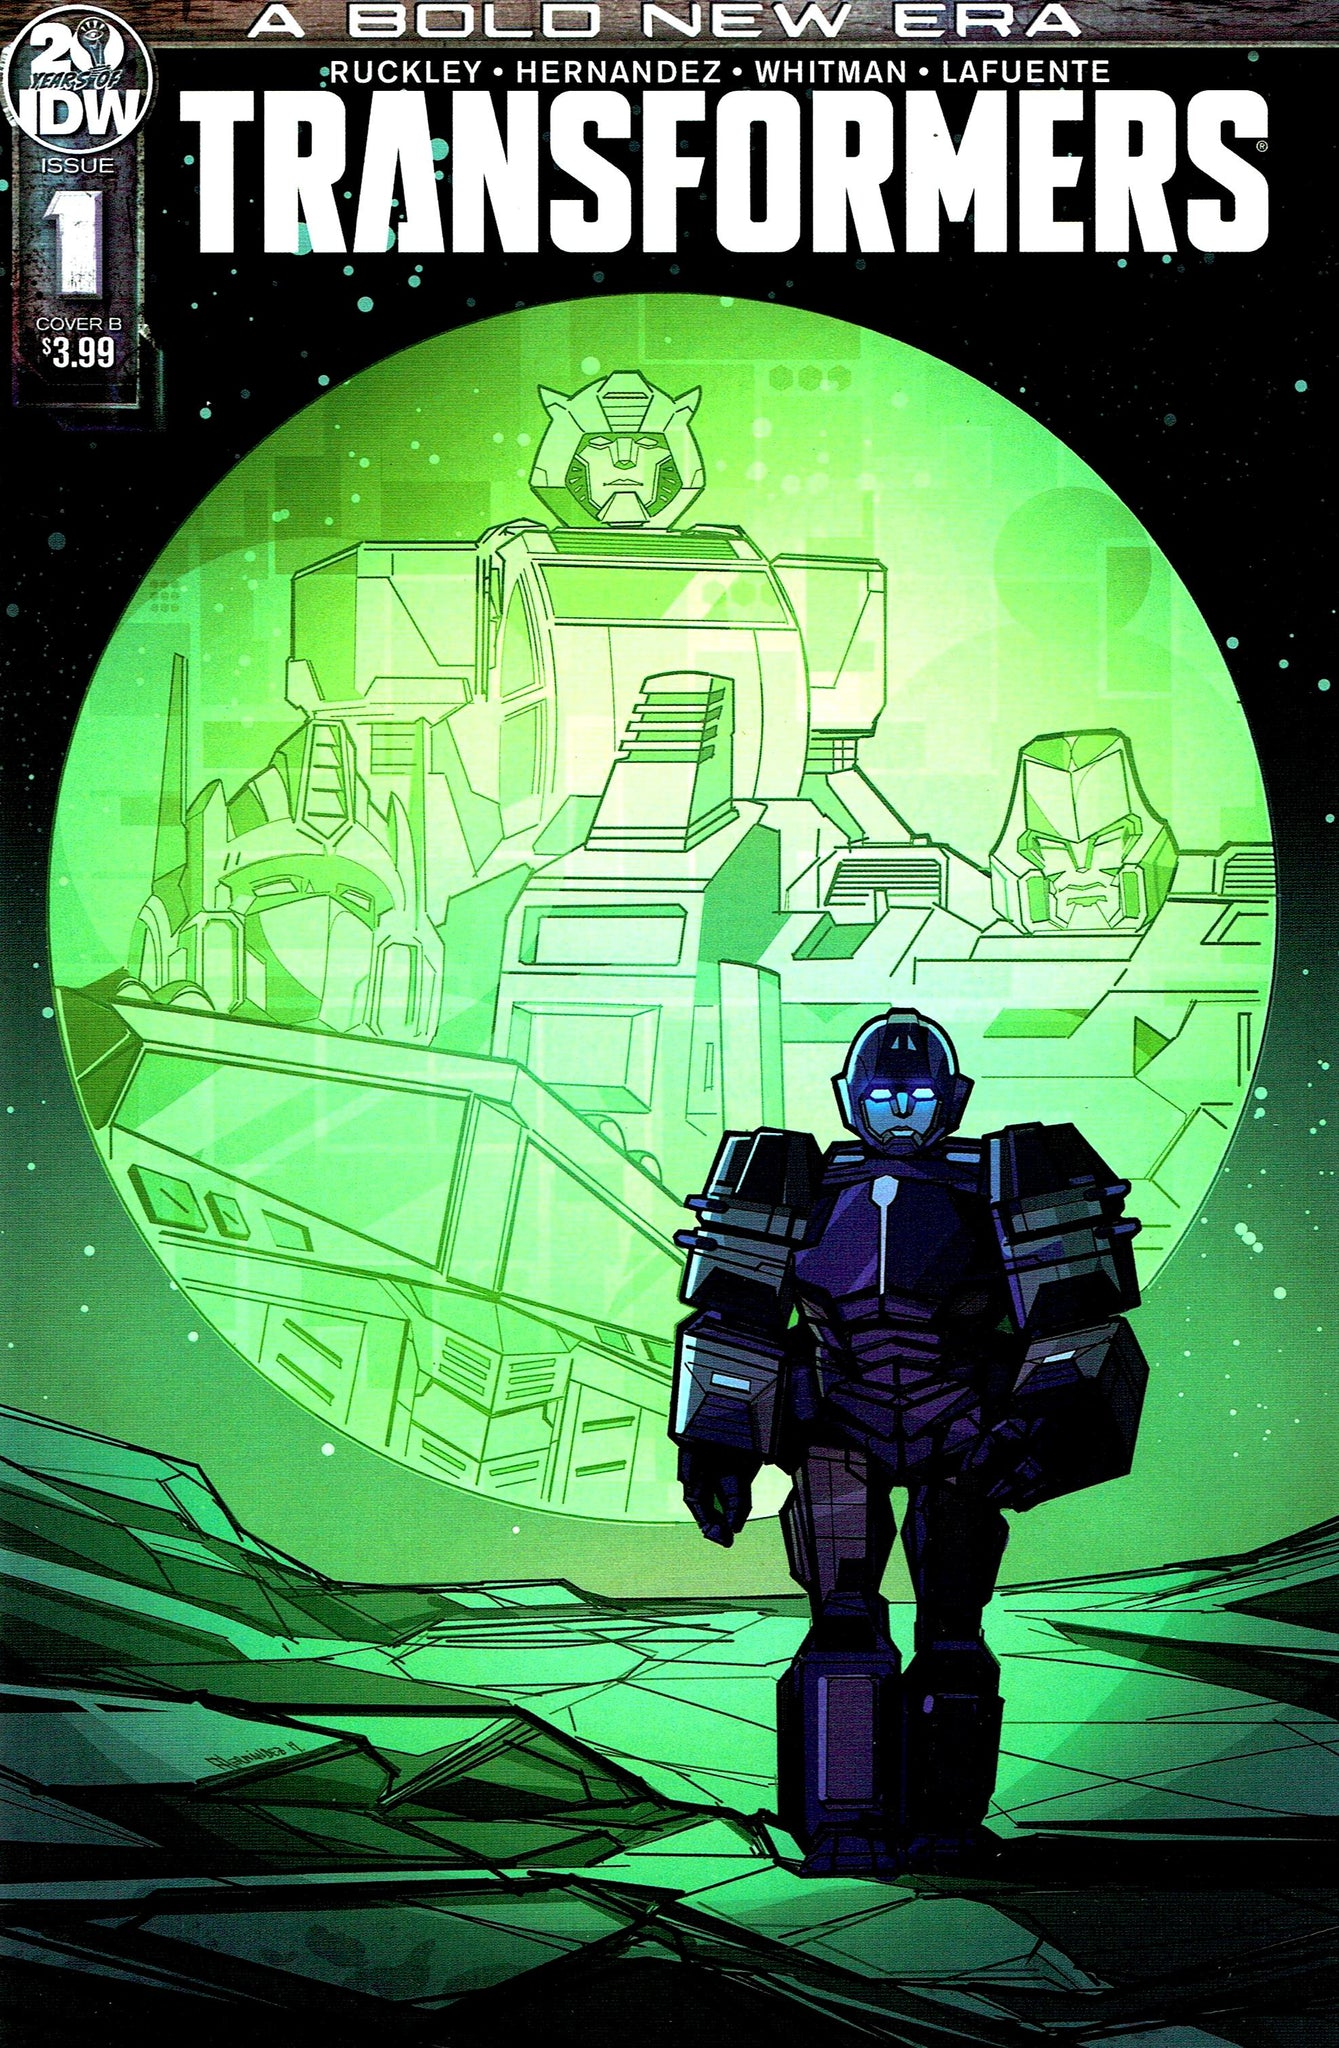 Transformers (2019) #01 Angel Hernandez Cover